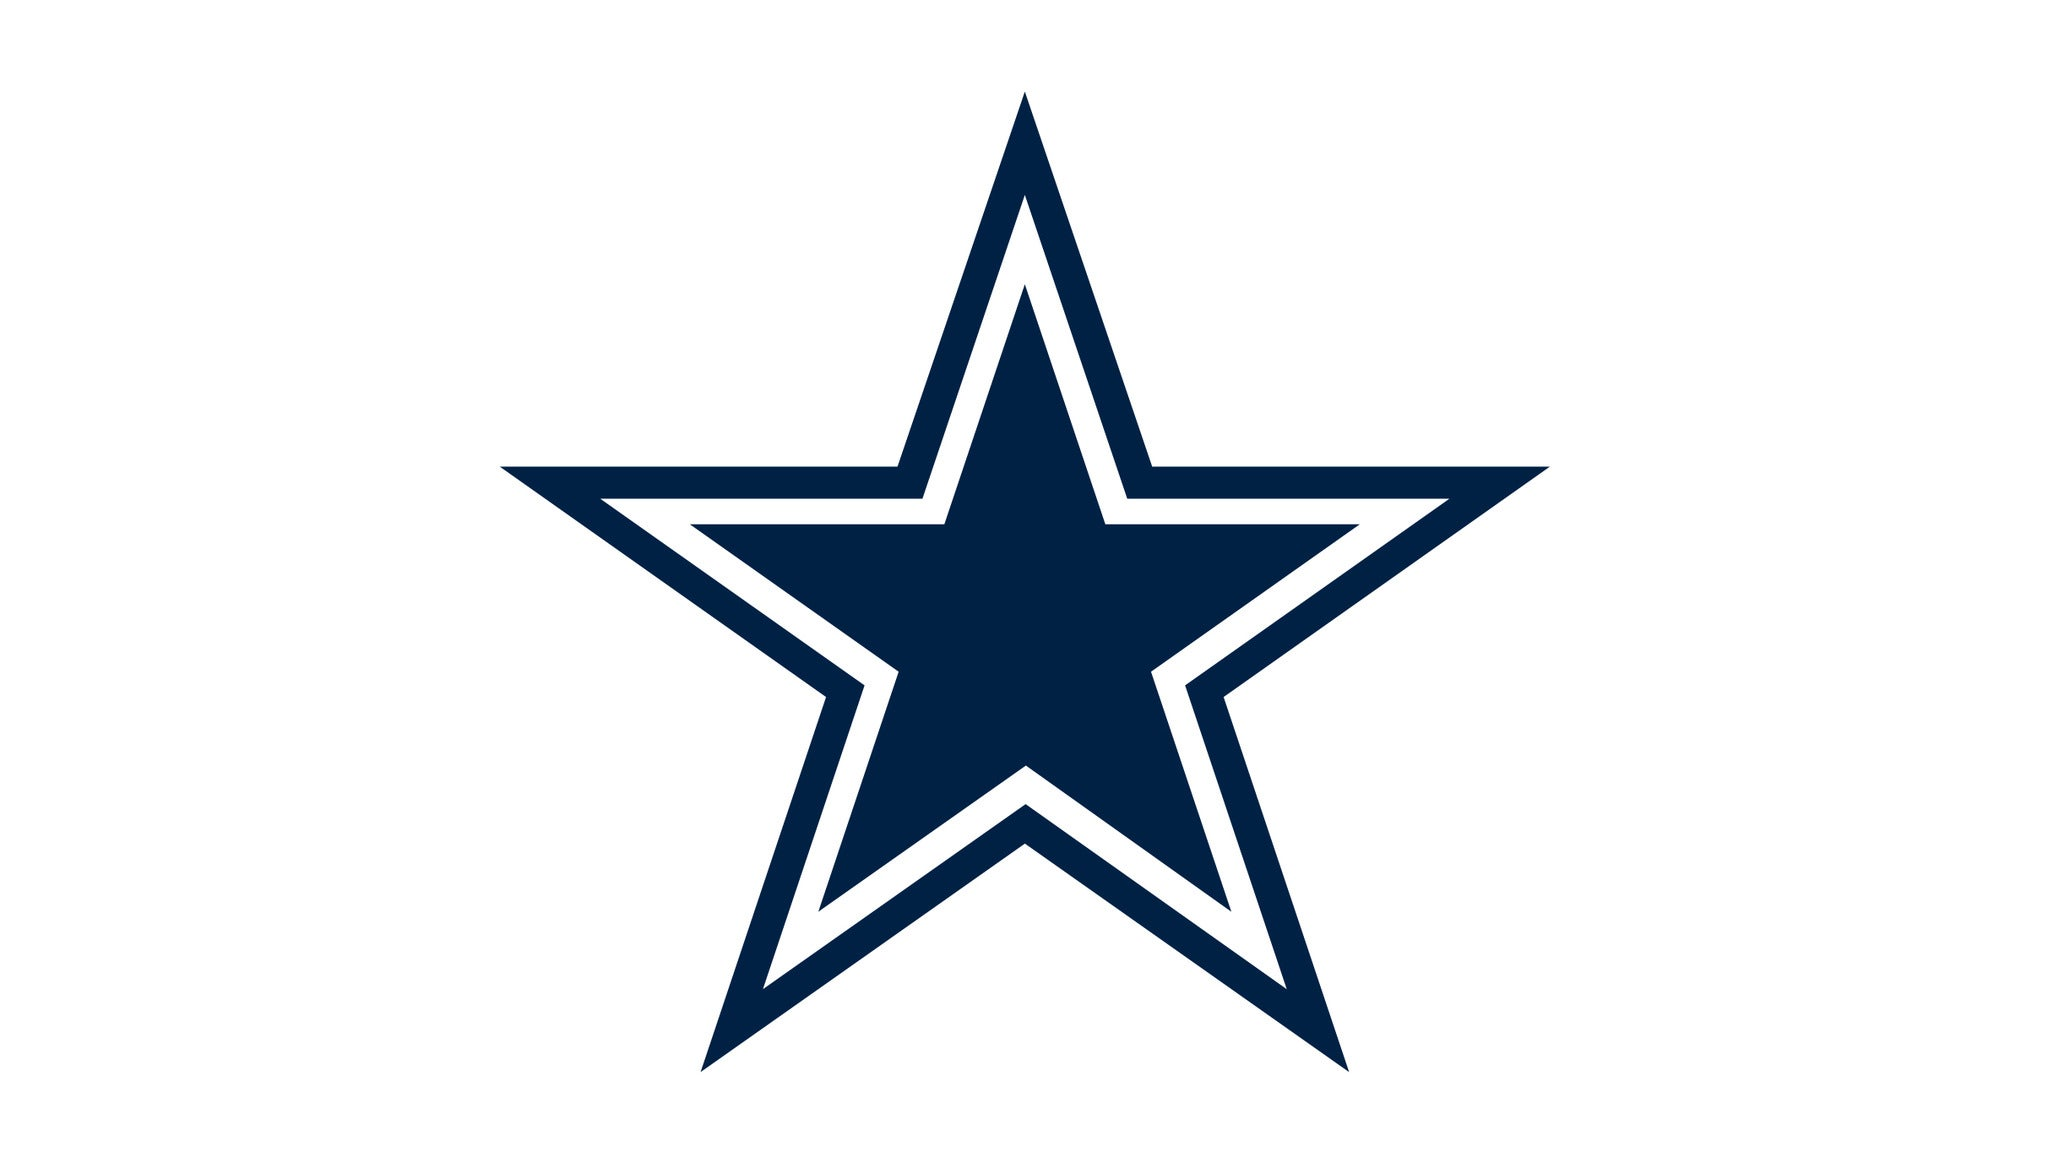 Dallas Cowboys vs. Seattle Seahawks at AT&T Stadium